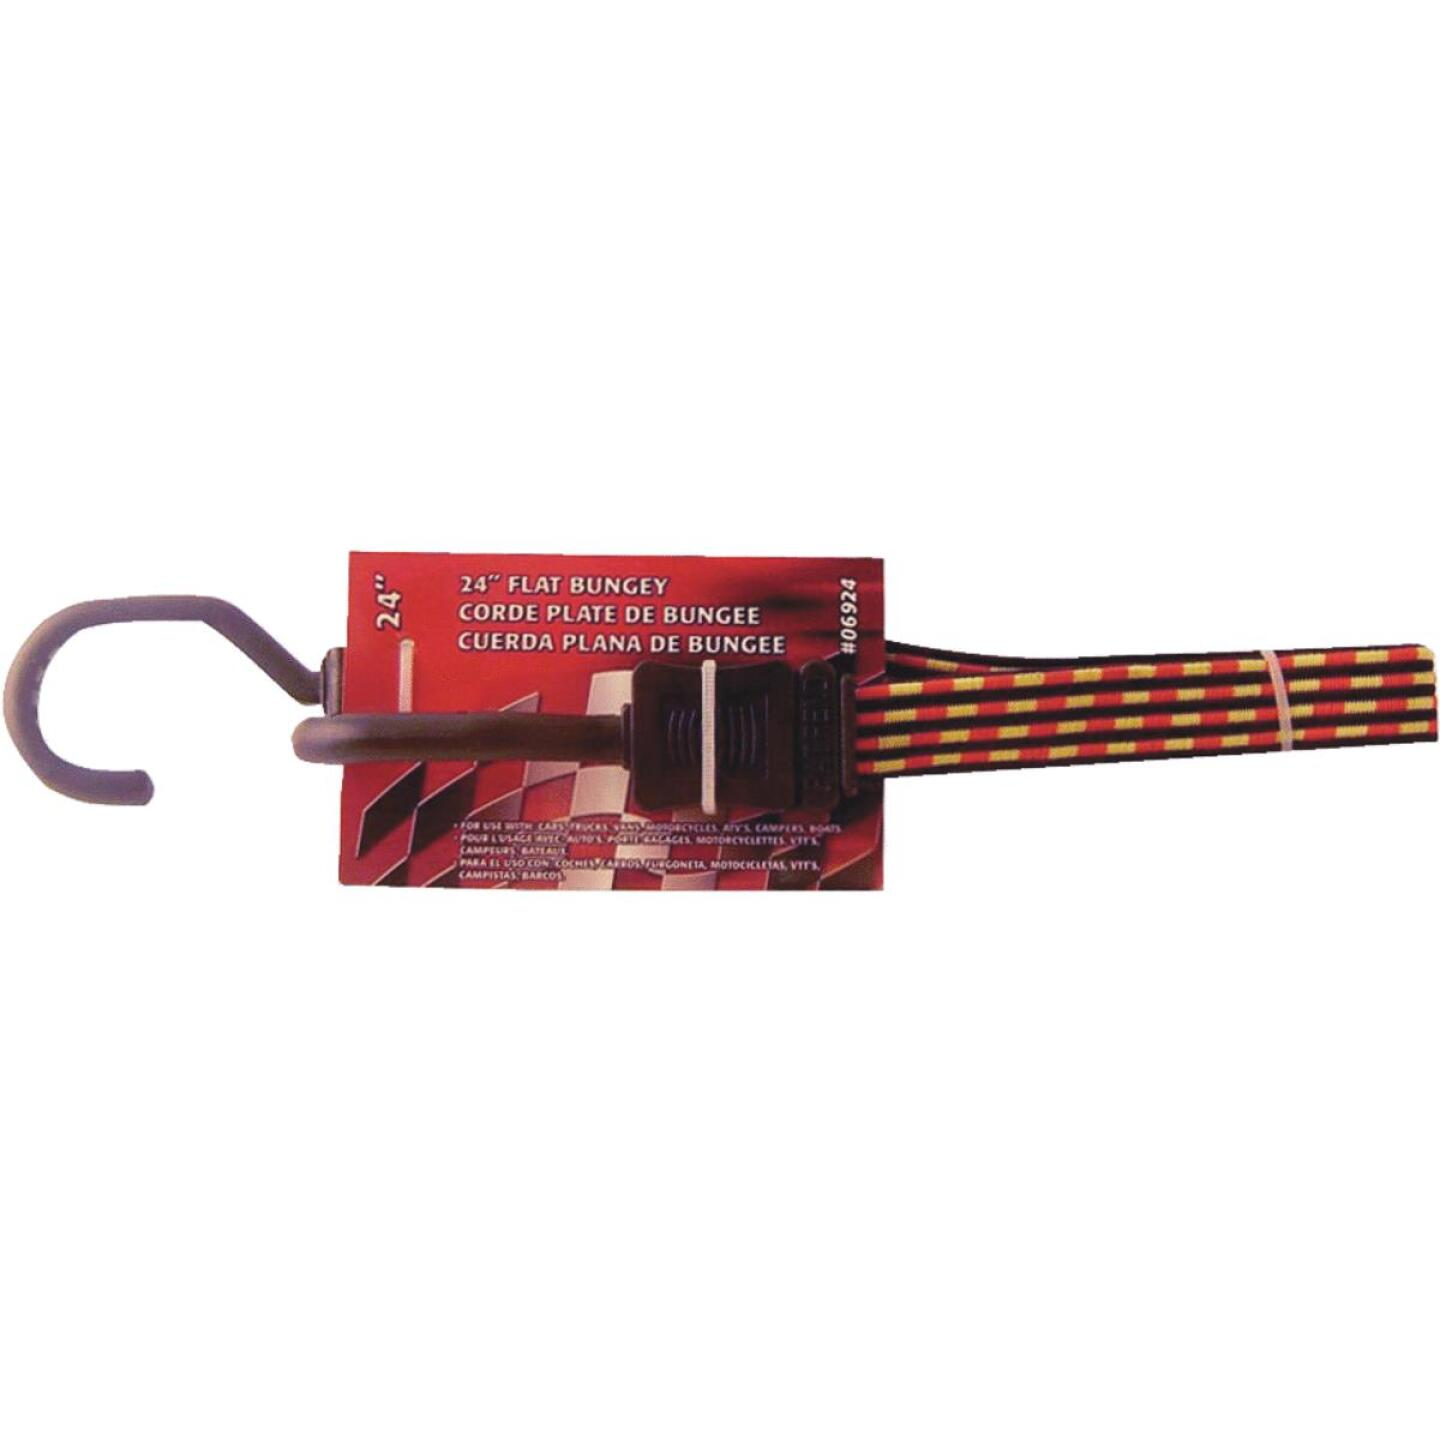 Erickson 3/4 In. x 24 In. Flat Bungee Cord, Red/Yellow Image 1